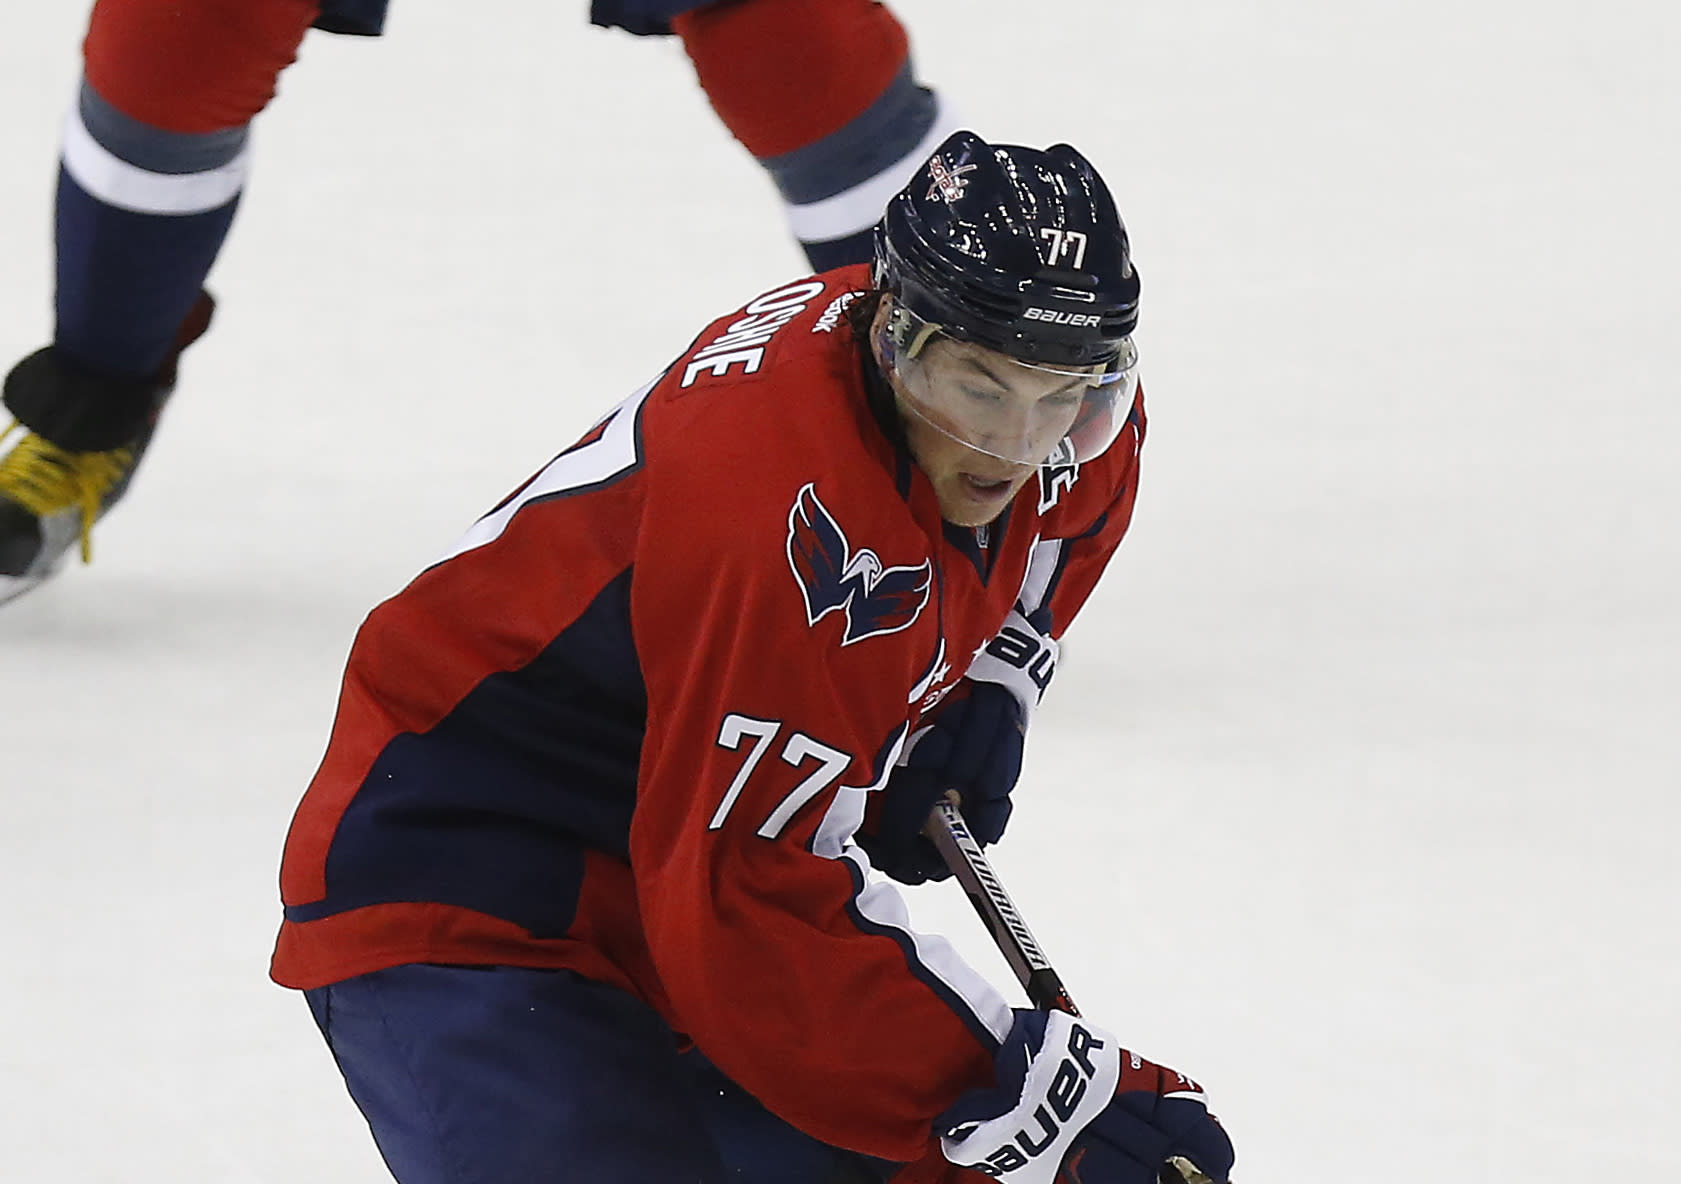 Oshie does it all in shootout win over Bruins